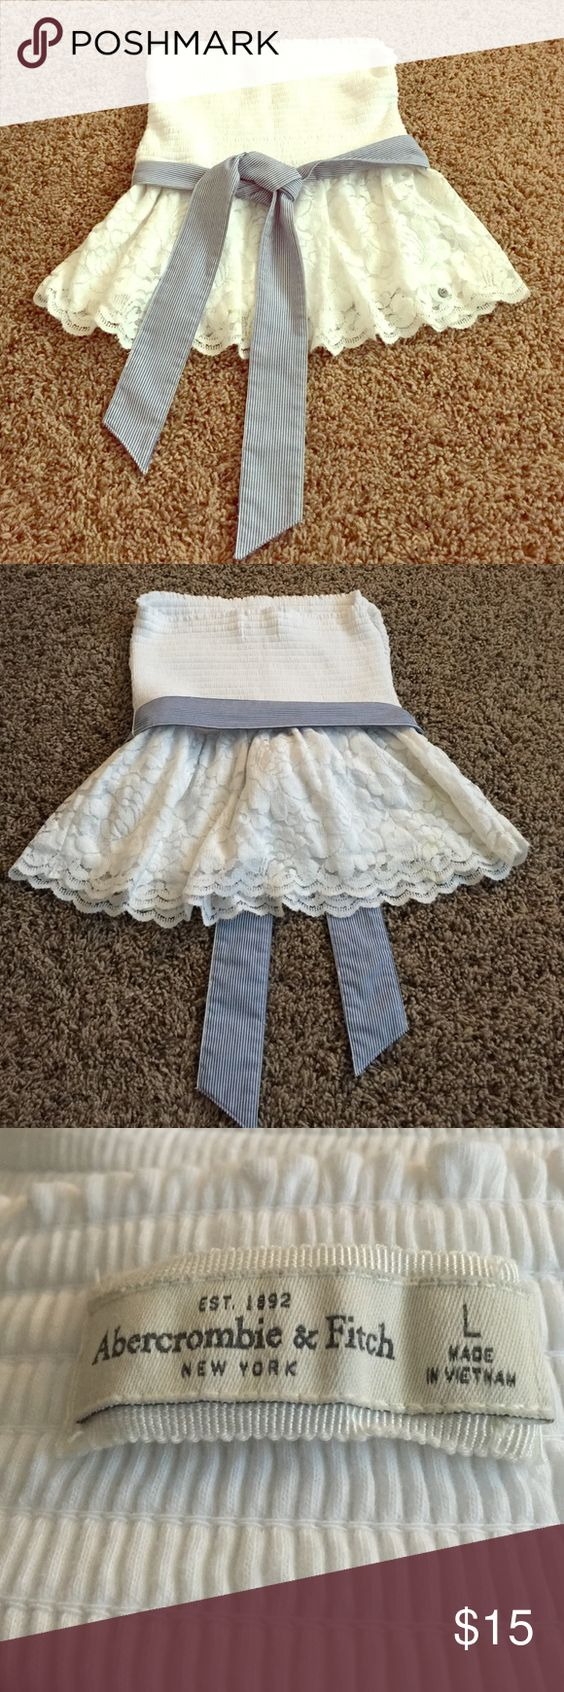 """Abercrombie & Fitch White Strapless Top Large Abercrombie & Fitch White Strapless Top Large. Very stretchy and super cute!  This is more like a juniors large see measurements. 12"""" Unstretched across chest and 17"""" long. Abercrombie & Fitch Tops Blouses"""